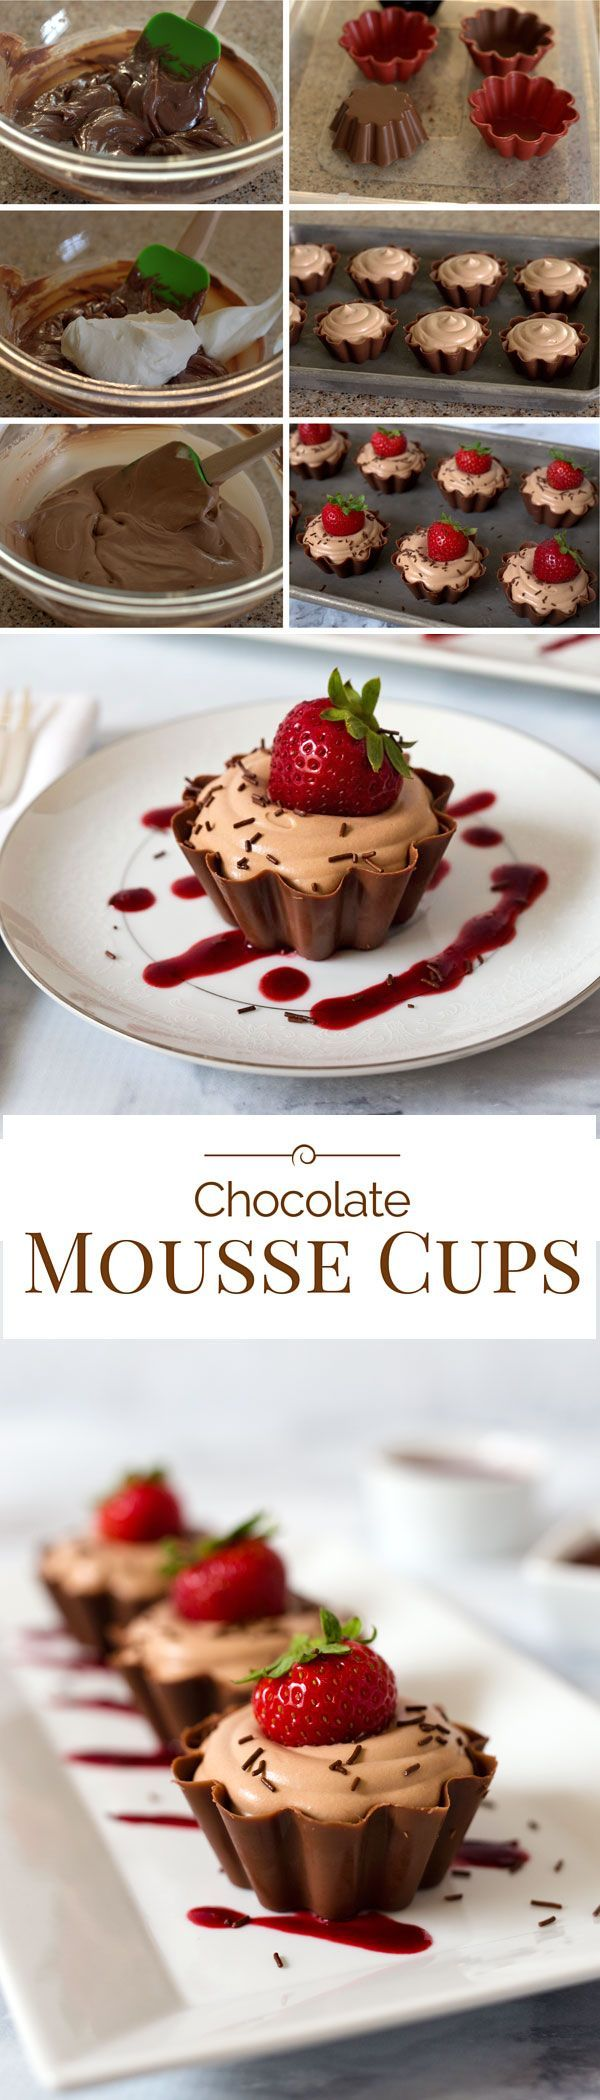 A pretty, ruffled chocolate cup filled with a rich, creamy milk chocolate mousse topped with a fresh, sweet strawberry, real chocolate sprinkles and served with a berry coulis.